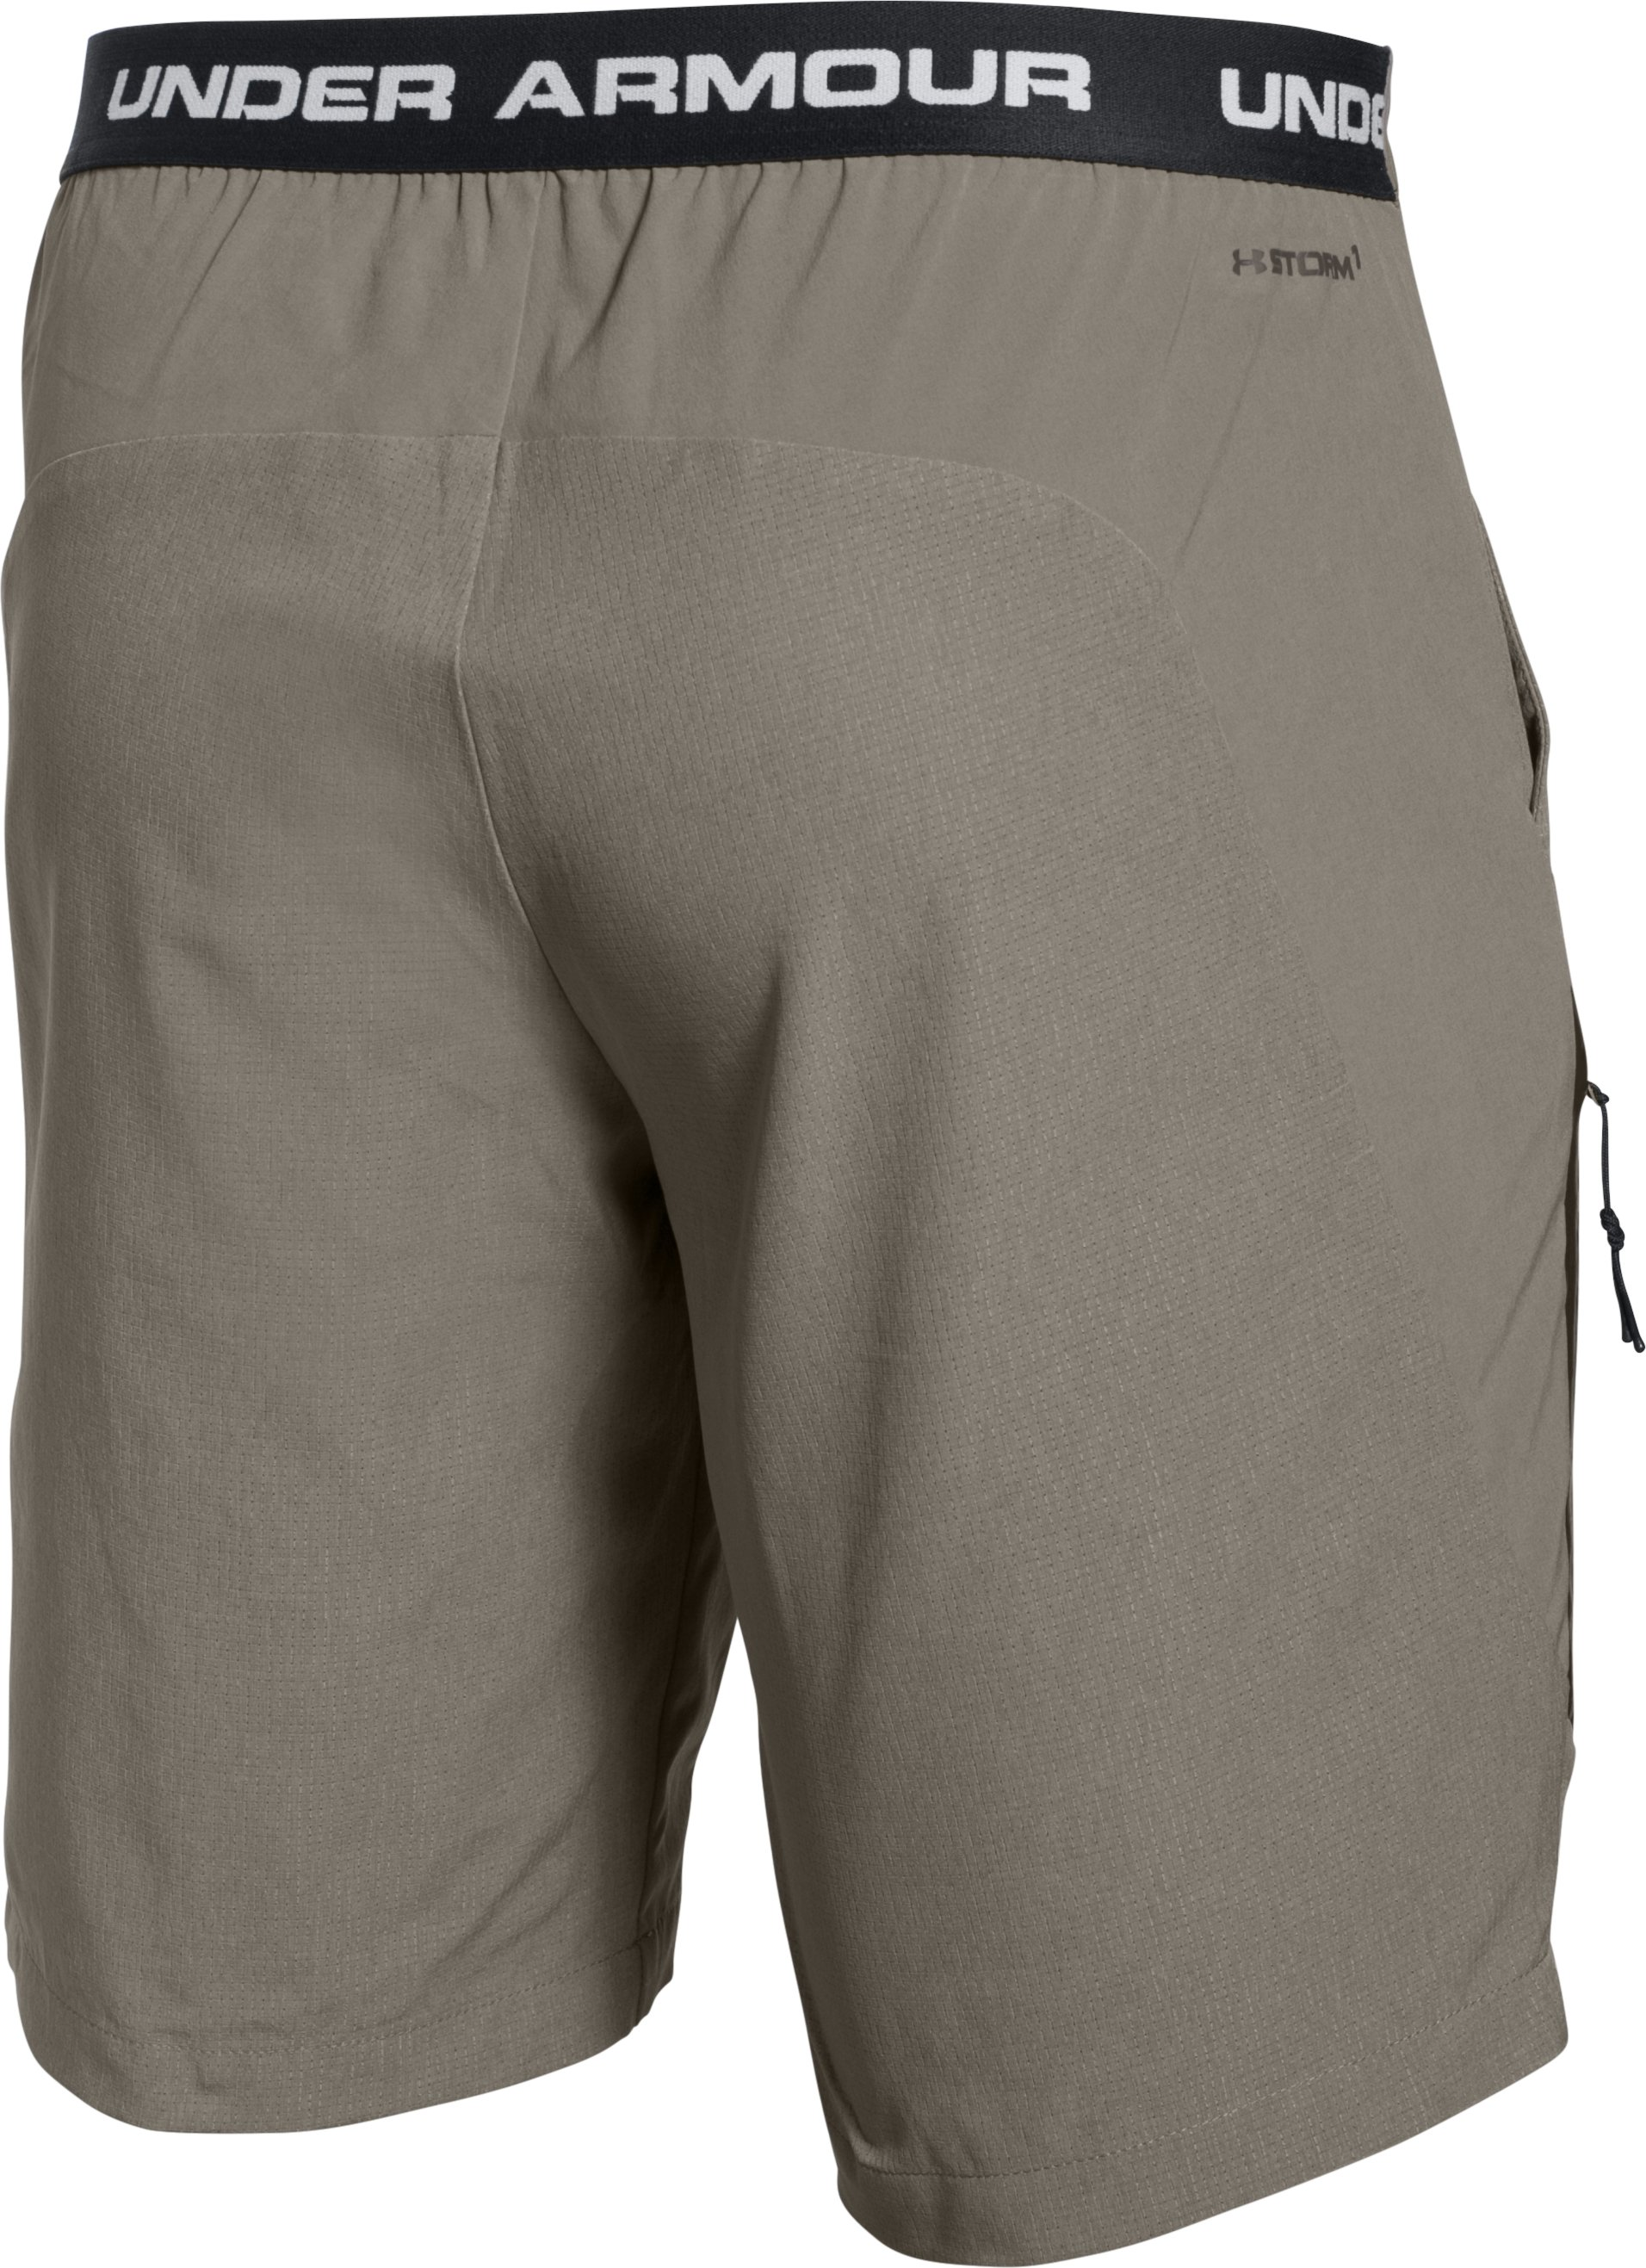 Men's UA ArmourVent™ Trail Shorts, STONELEIGH TAUPE